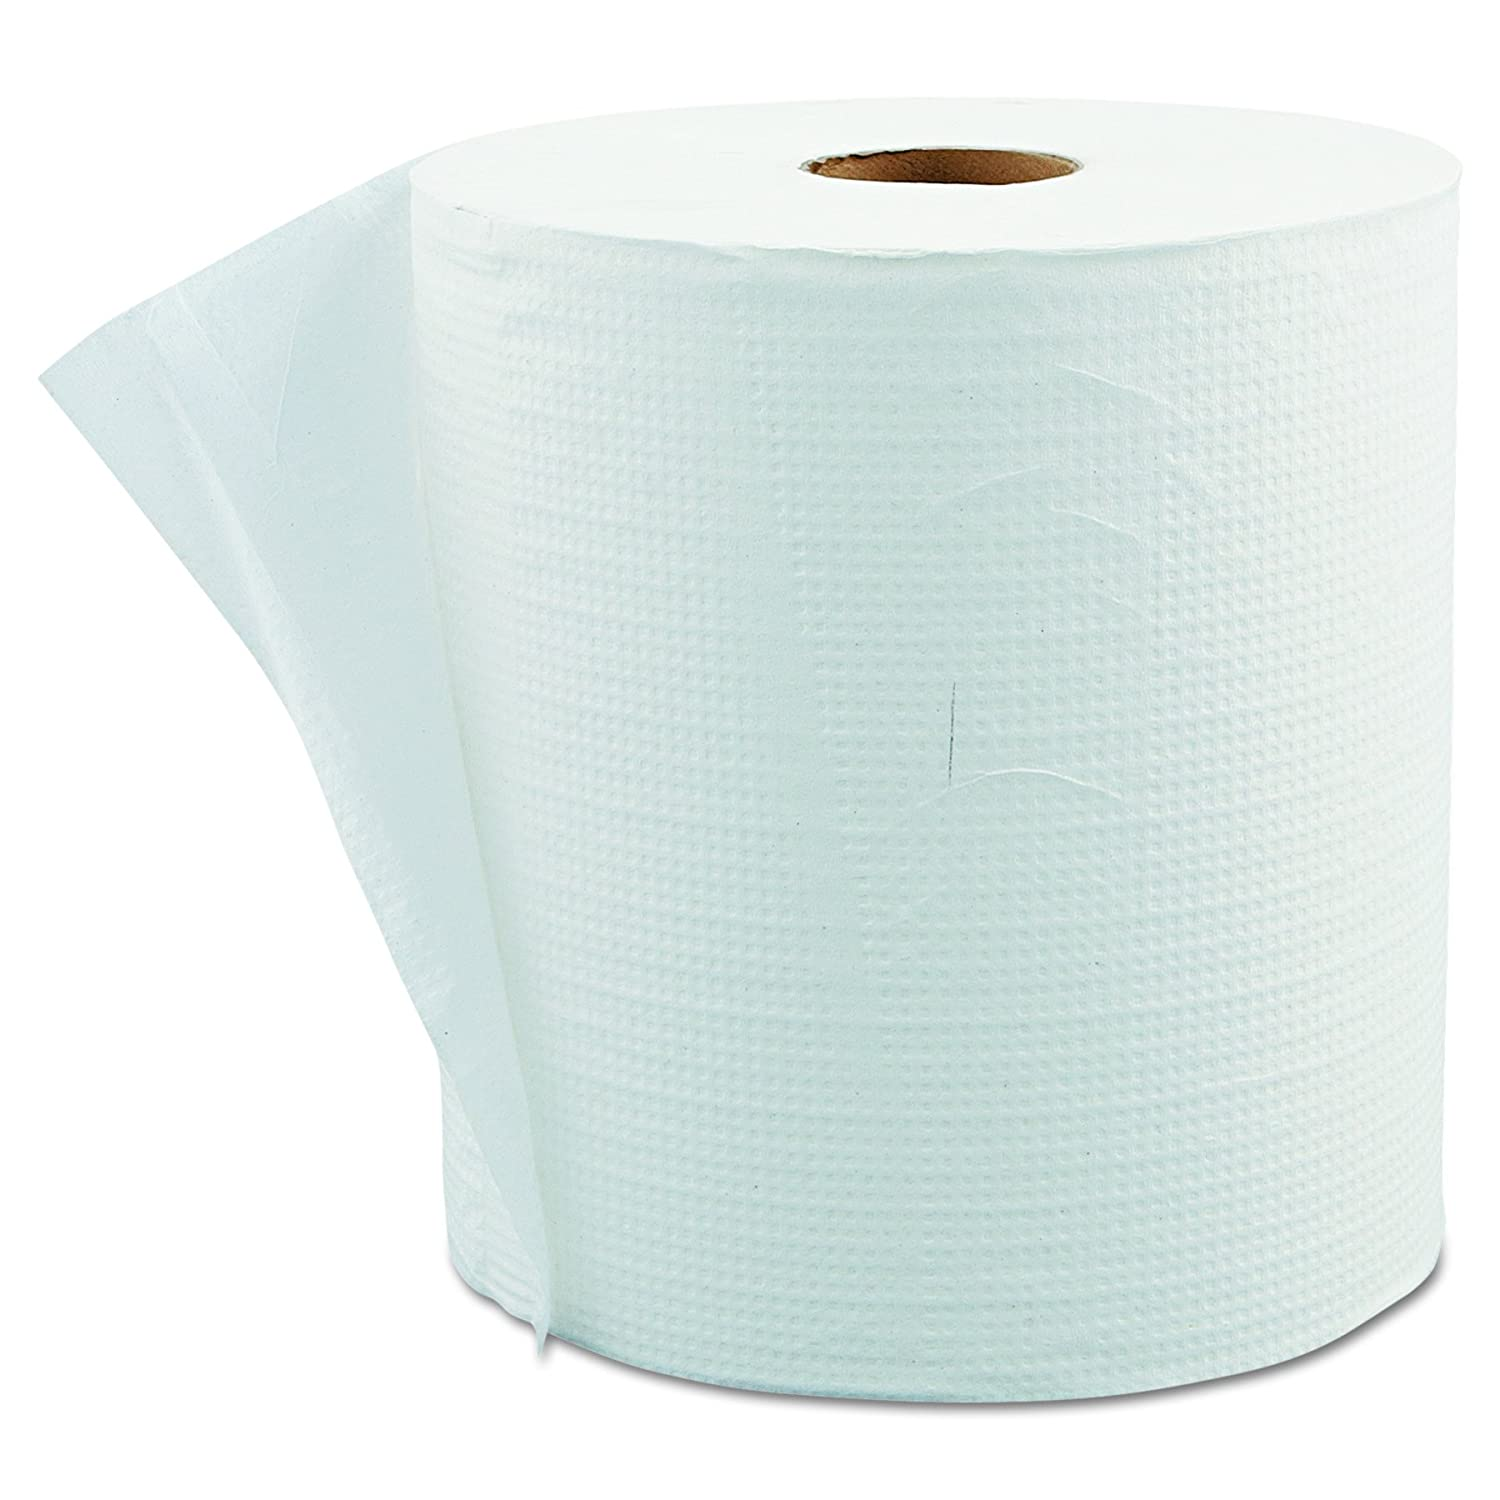 Morcon Paper MOR W6800 Hard Wound Roll Towels, 7 9/10\